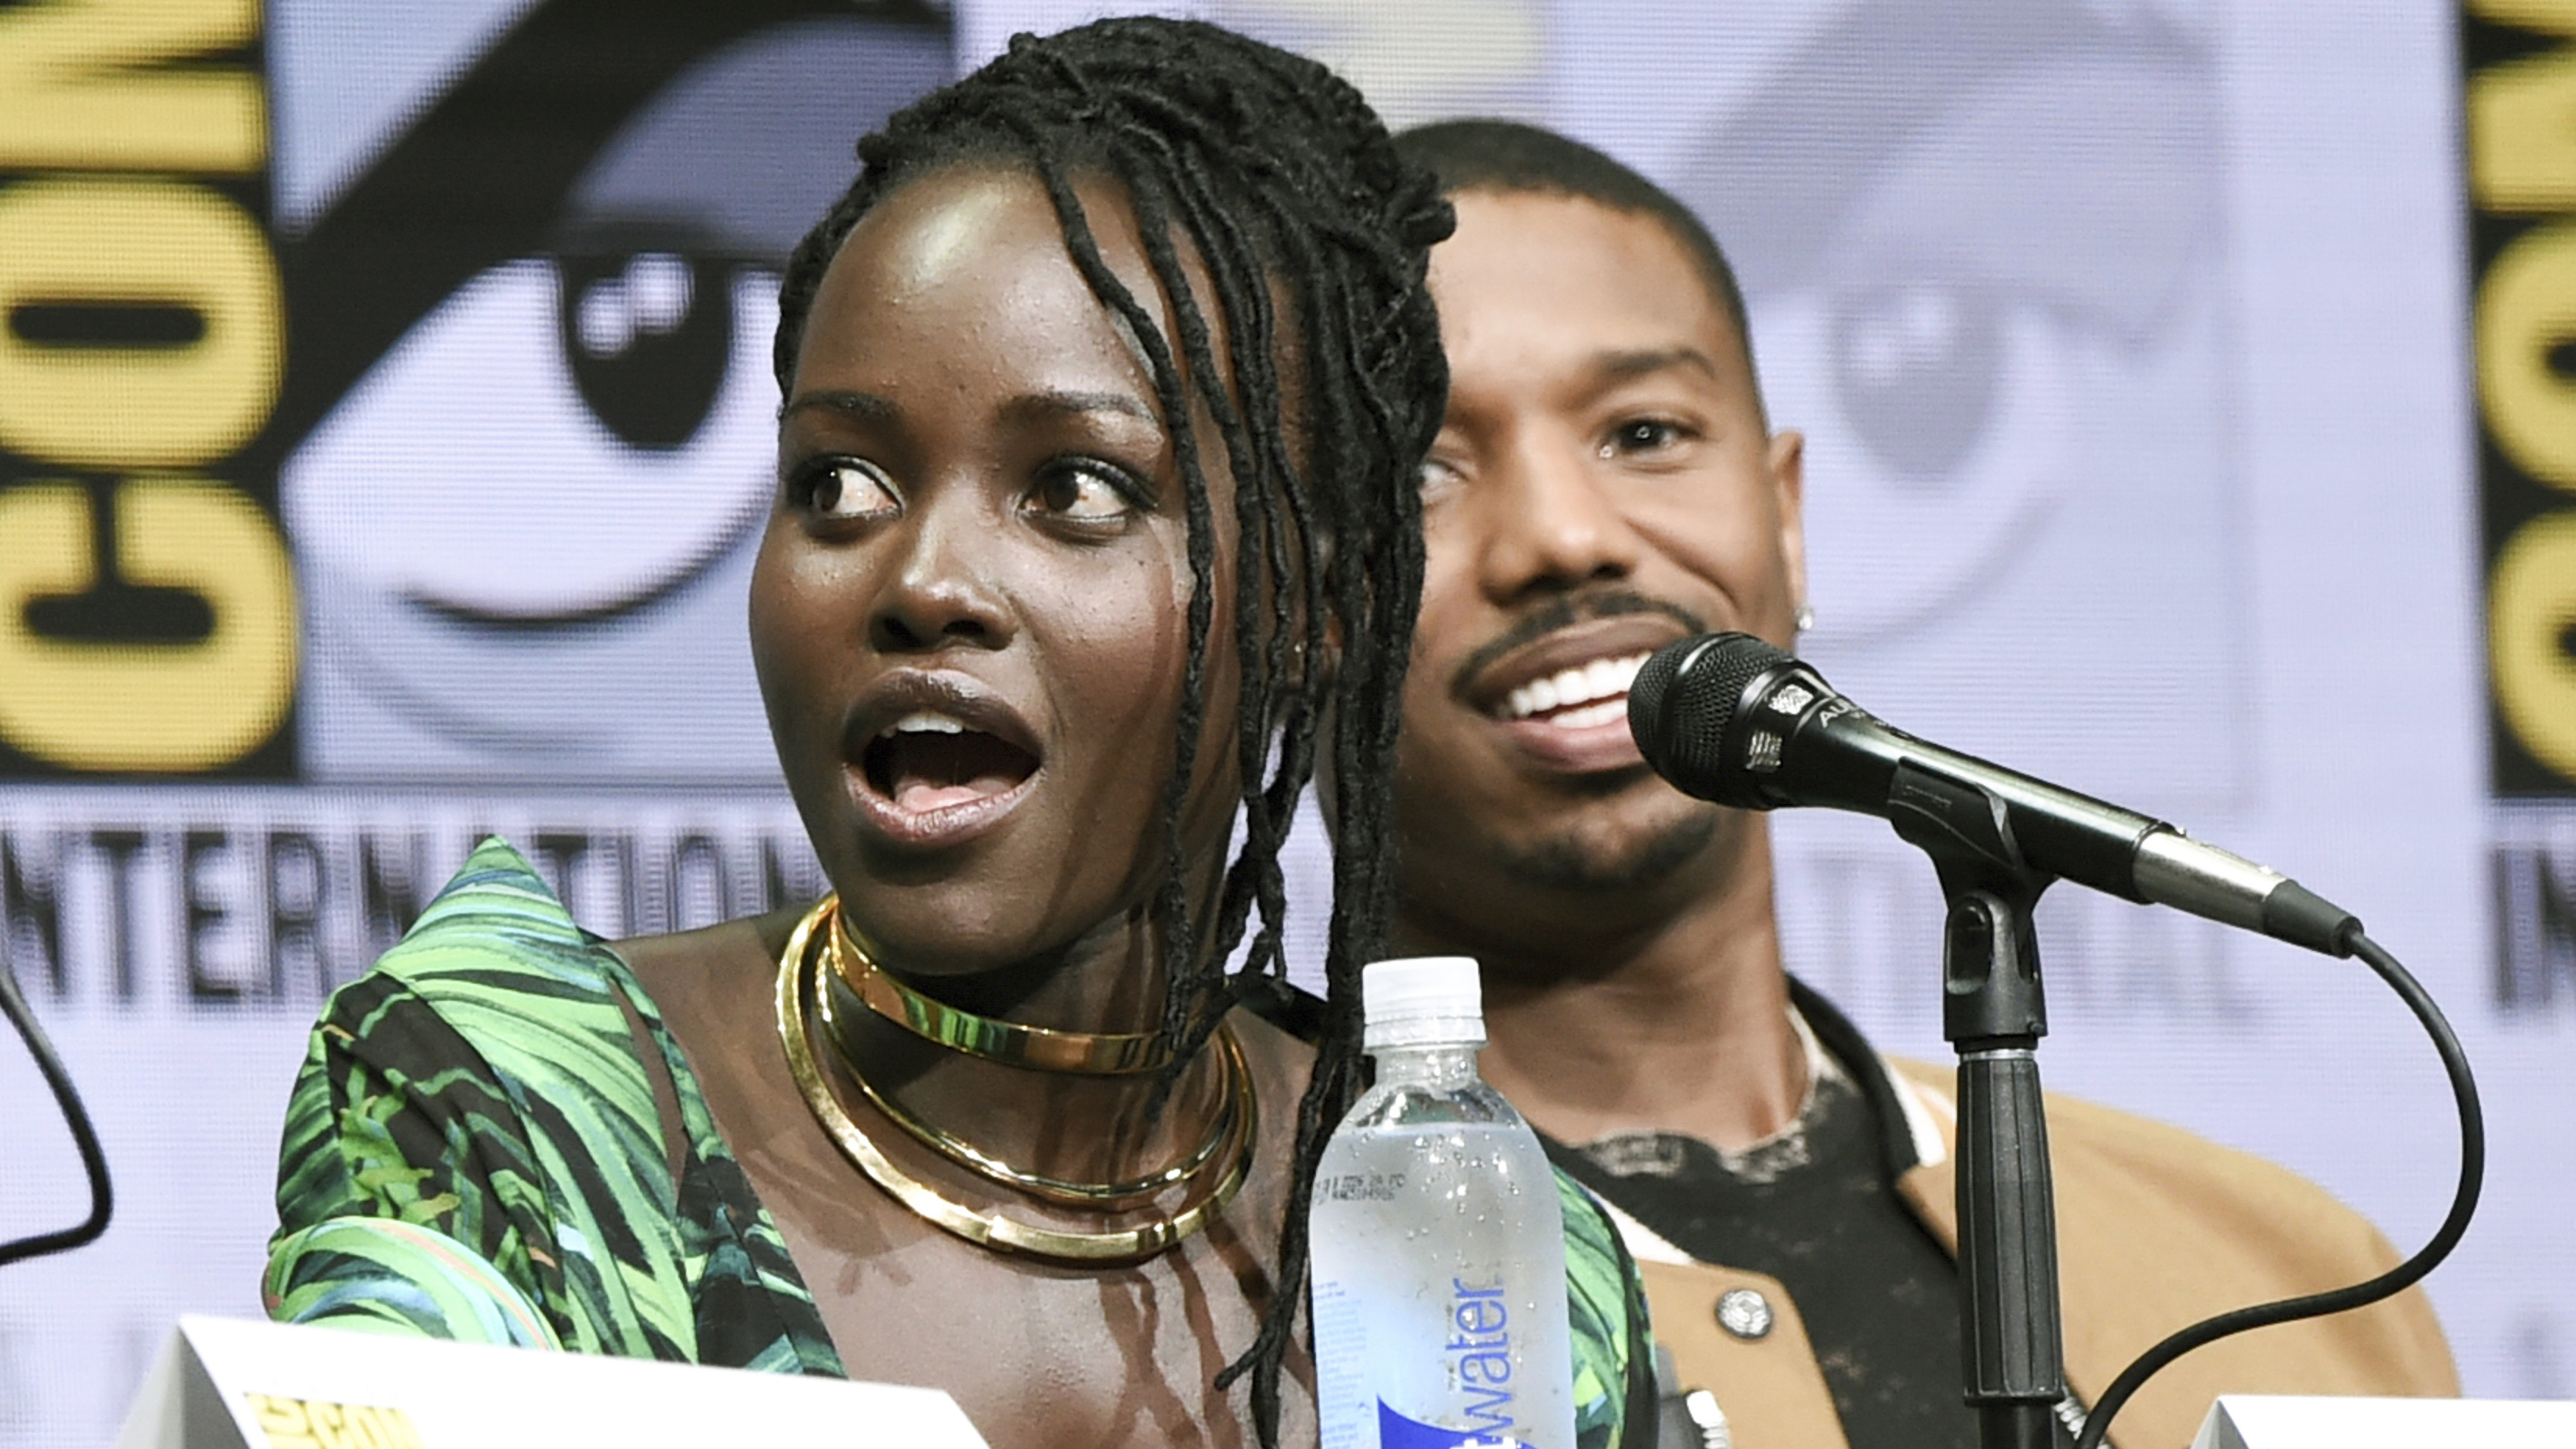 Lupita Nyong'o was not born in Marvel's Black Panther mythical kingdom of Wakanda, as British Airways inflight magazine reported